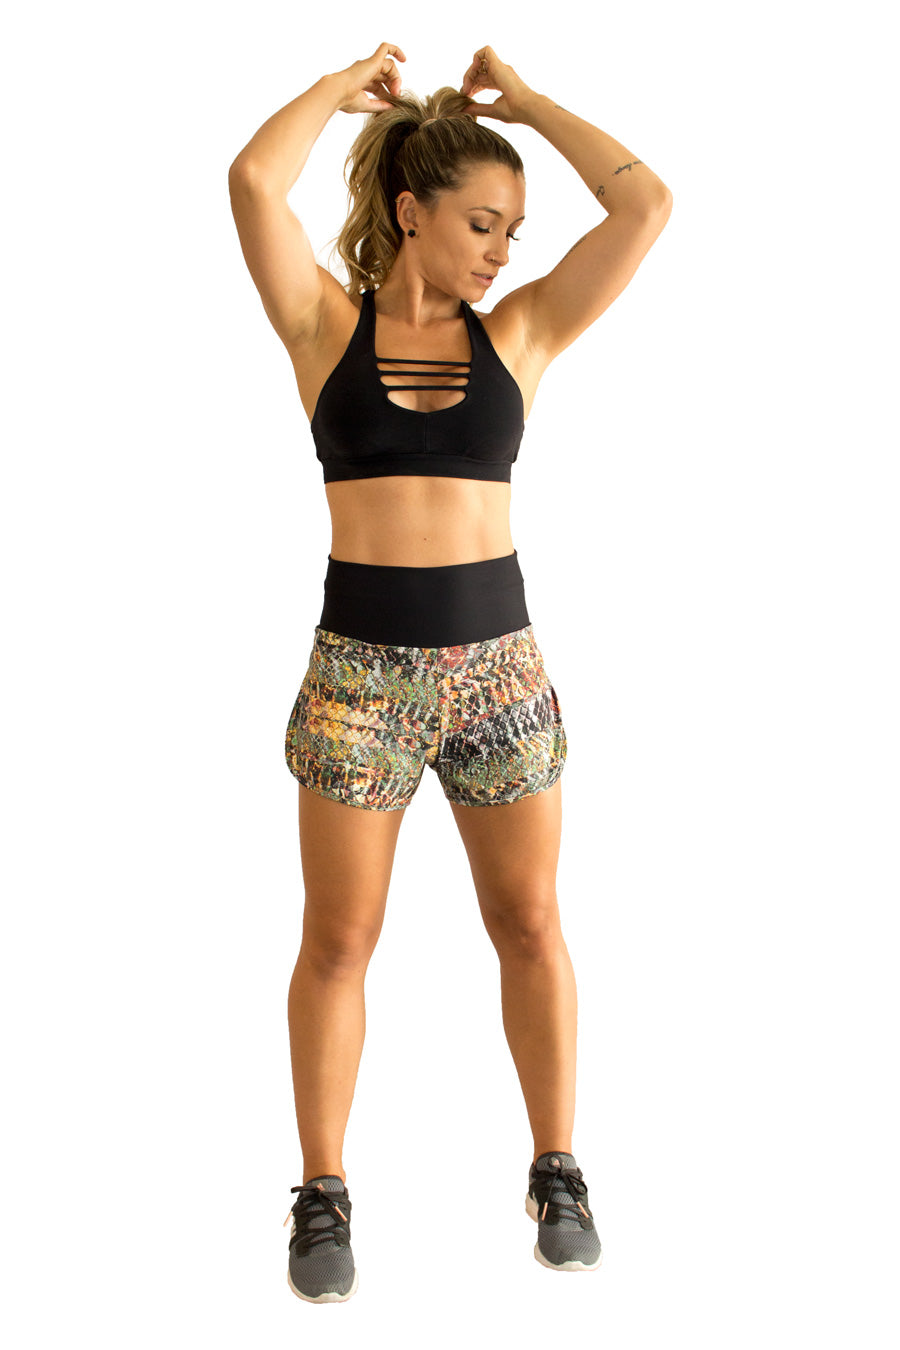 Praiana Run Shorts - women yoga clothes beBrazil